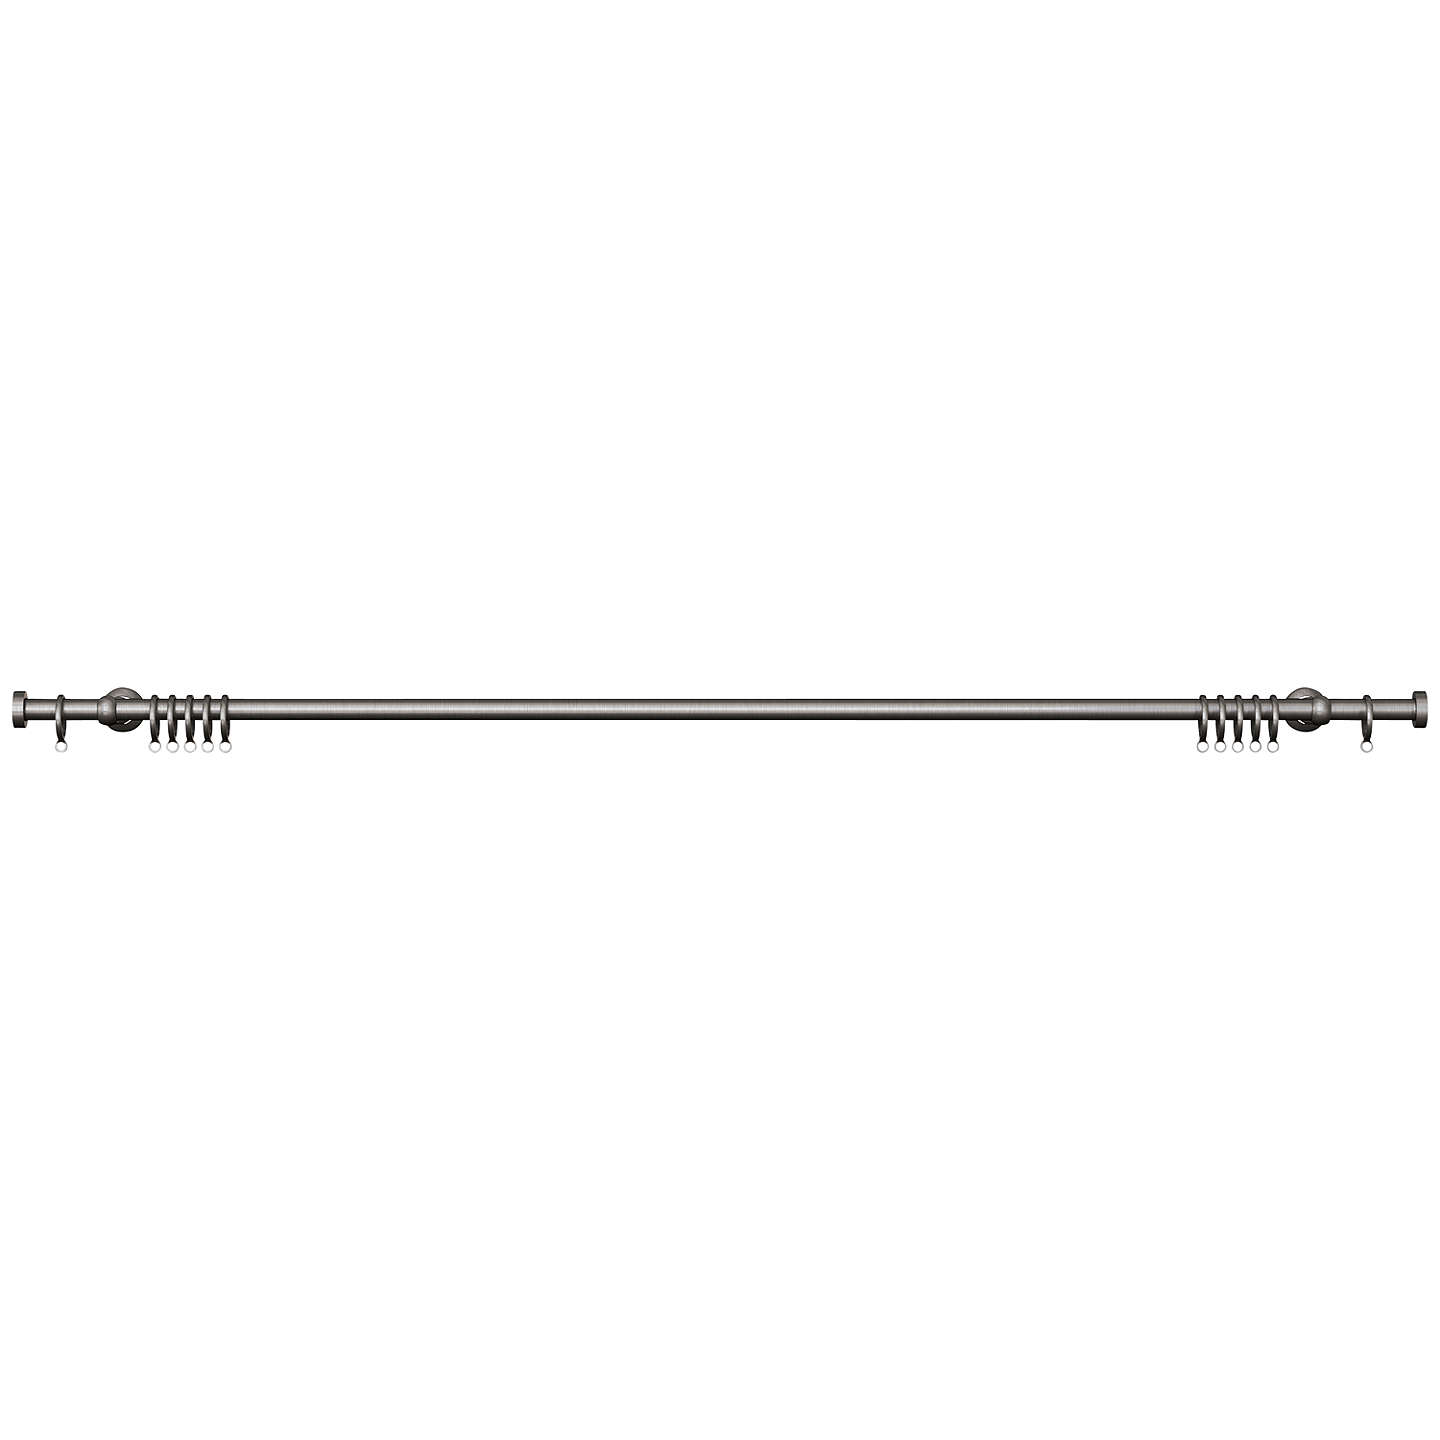 BuyJohn Lewis Steel Curtain Pole Kit, Traditional Brackets, L180cm x Dia.19mm Online at johnlewis.com